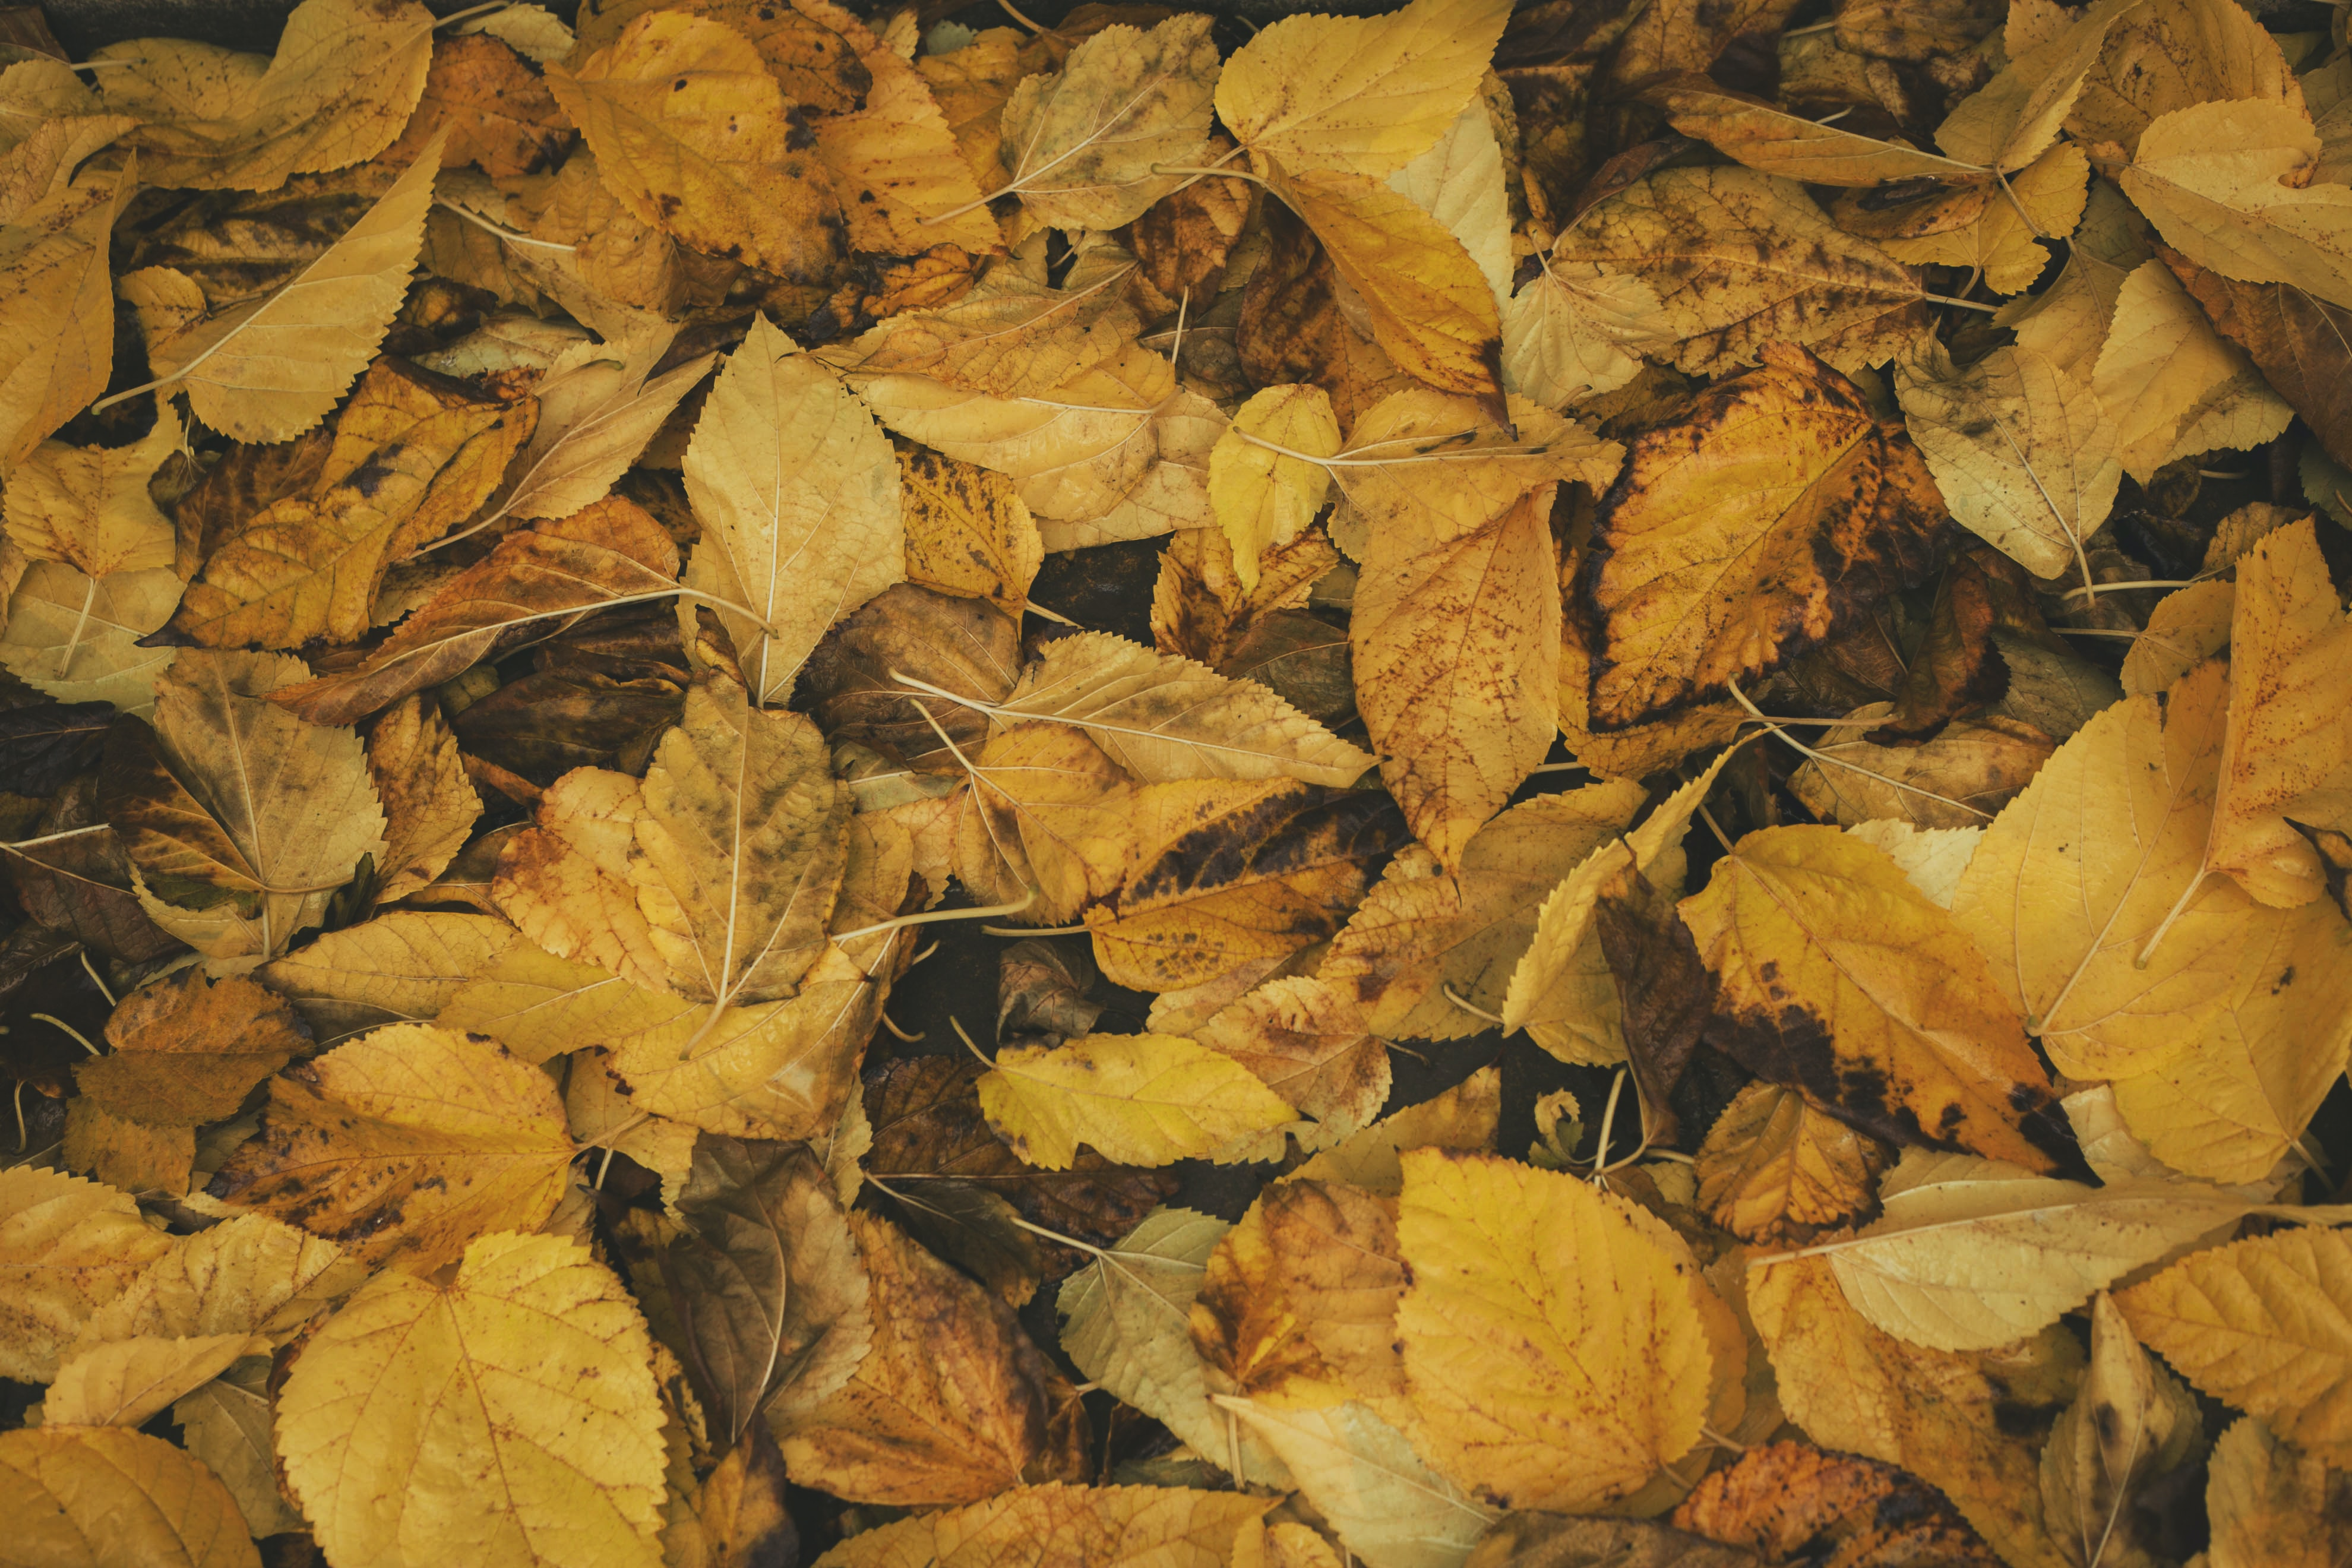 A pile of yellowed leaves on the ground